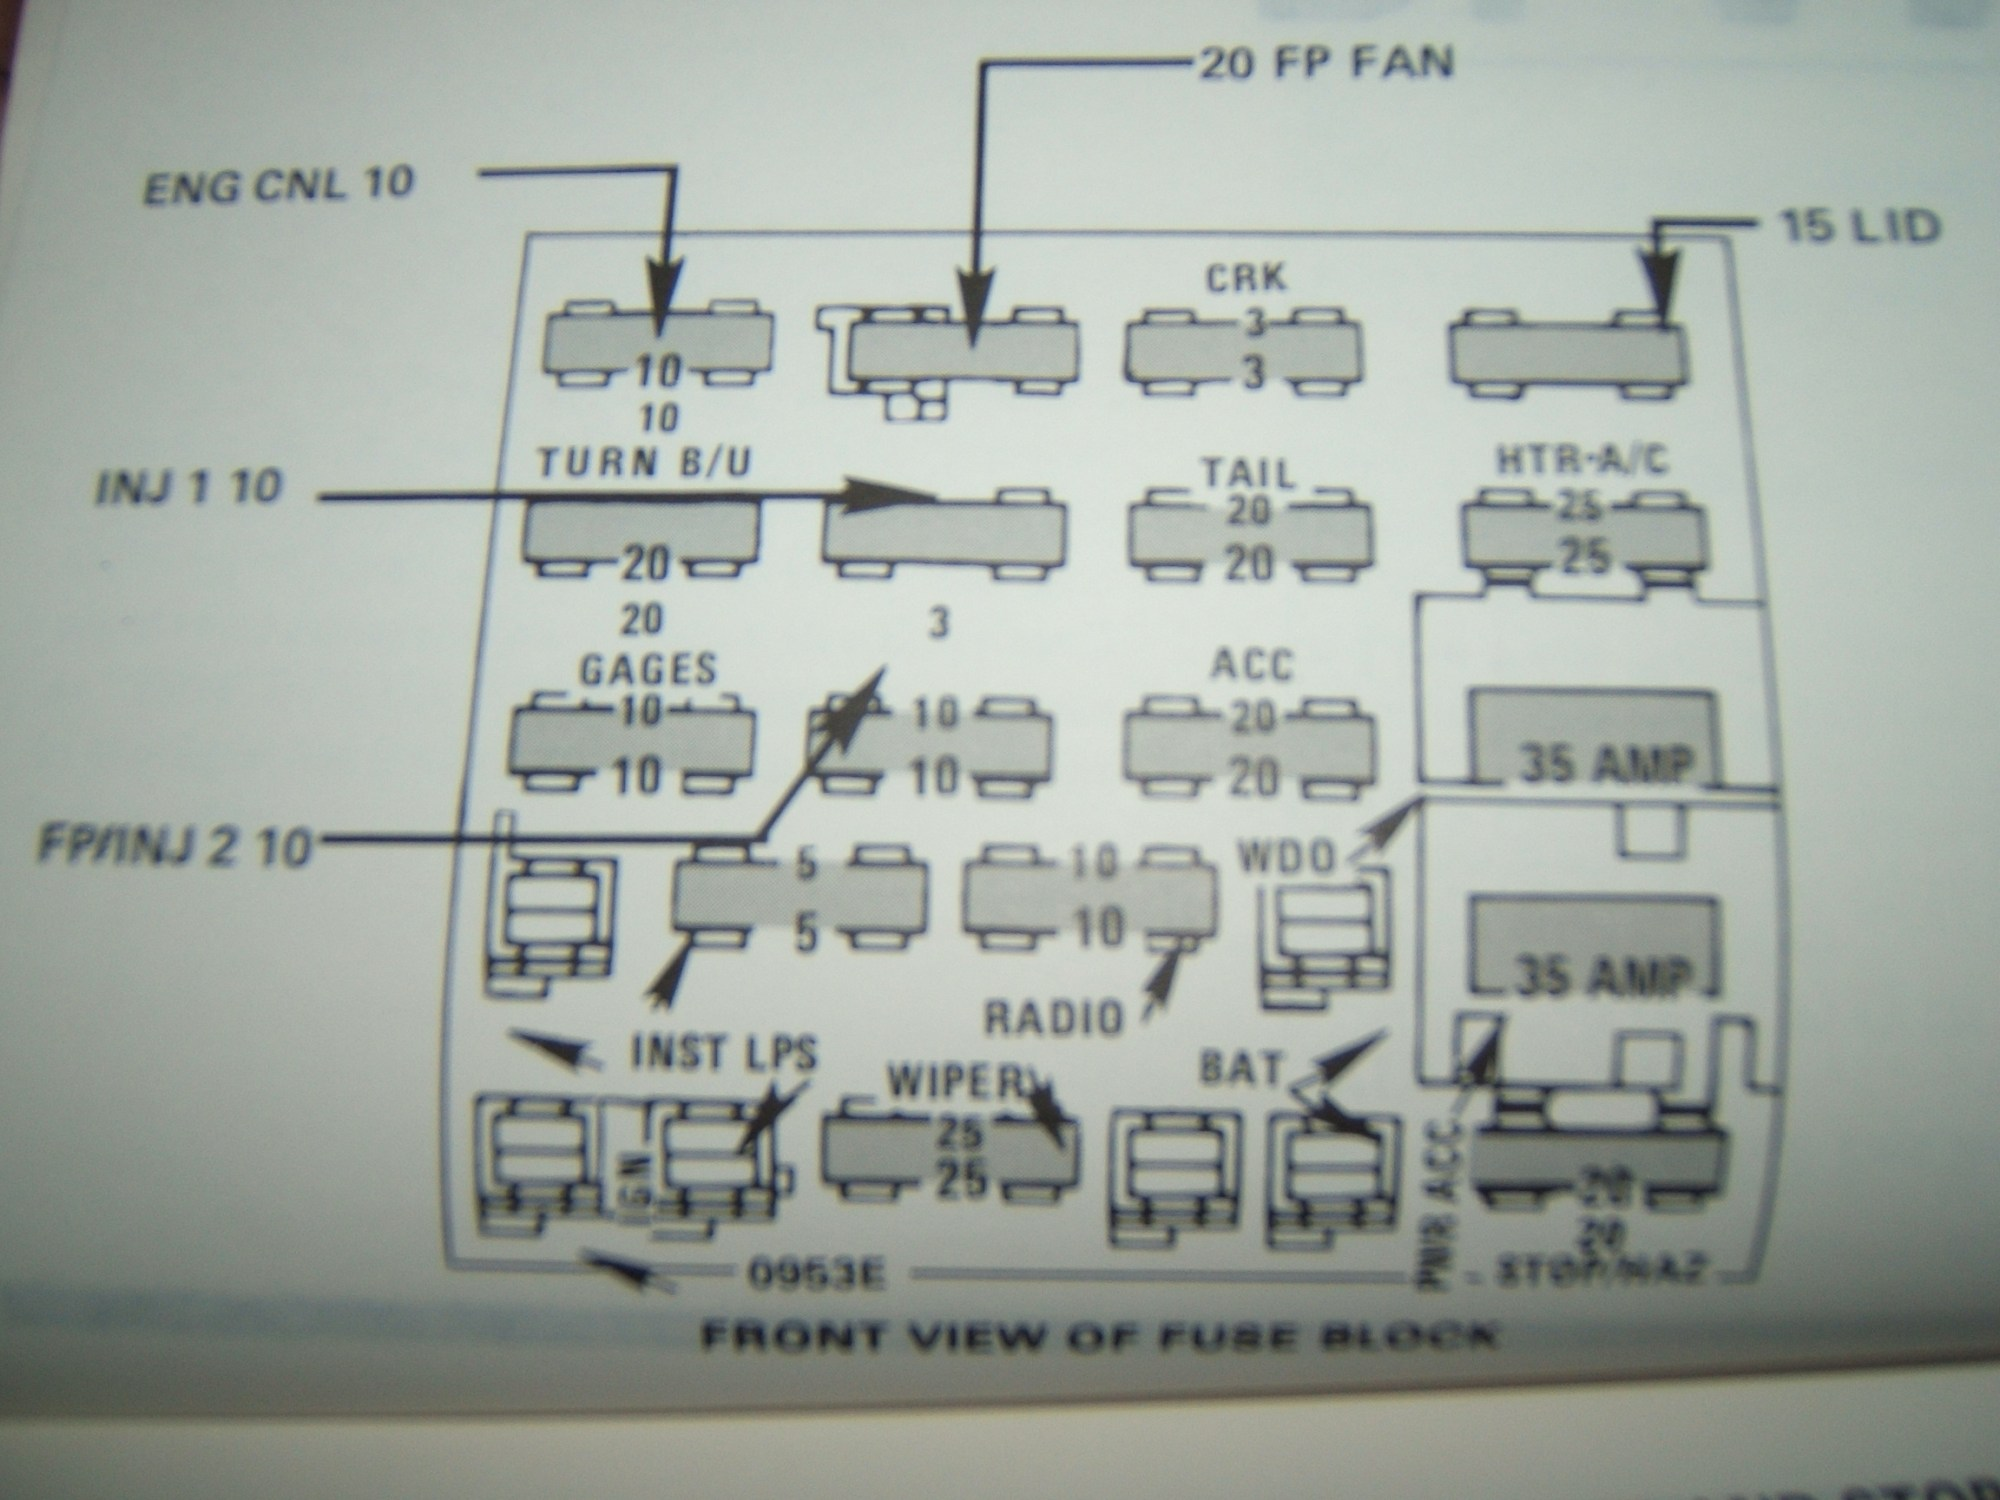 hight resolution of 91 camaro fuse diagram wiring diagram sample 91 camaro rs wiring diagram 1991 chevy camaro fuse diagram